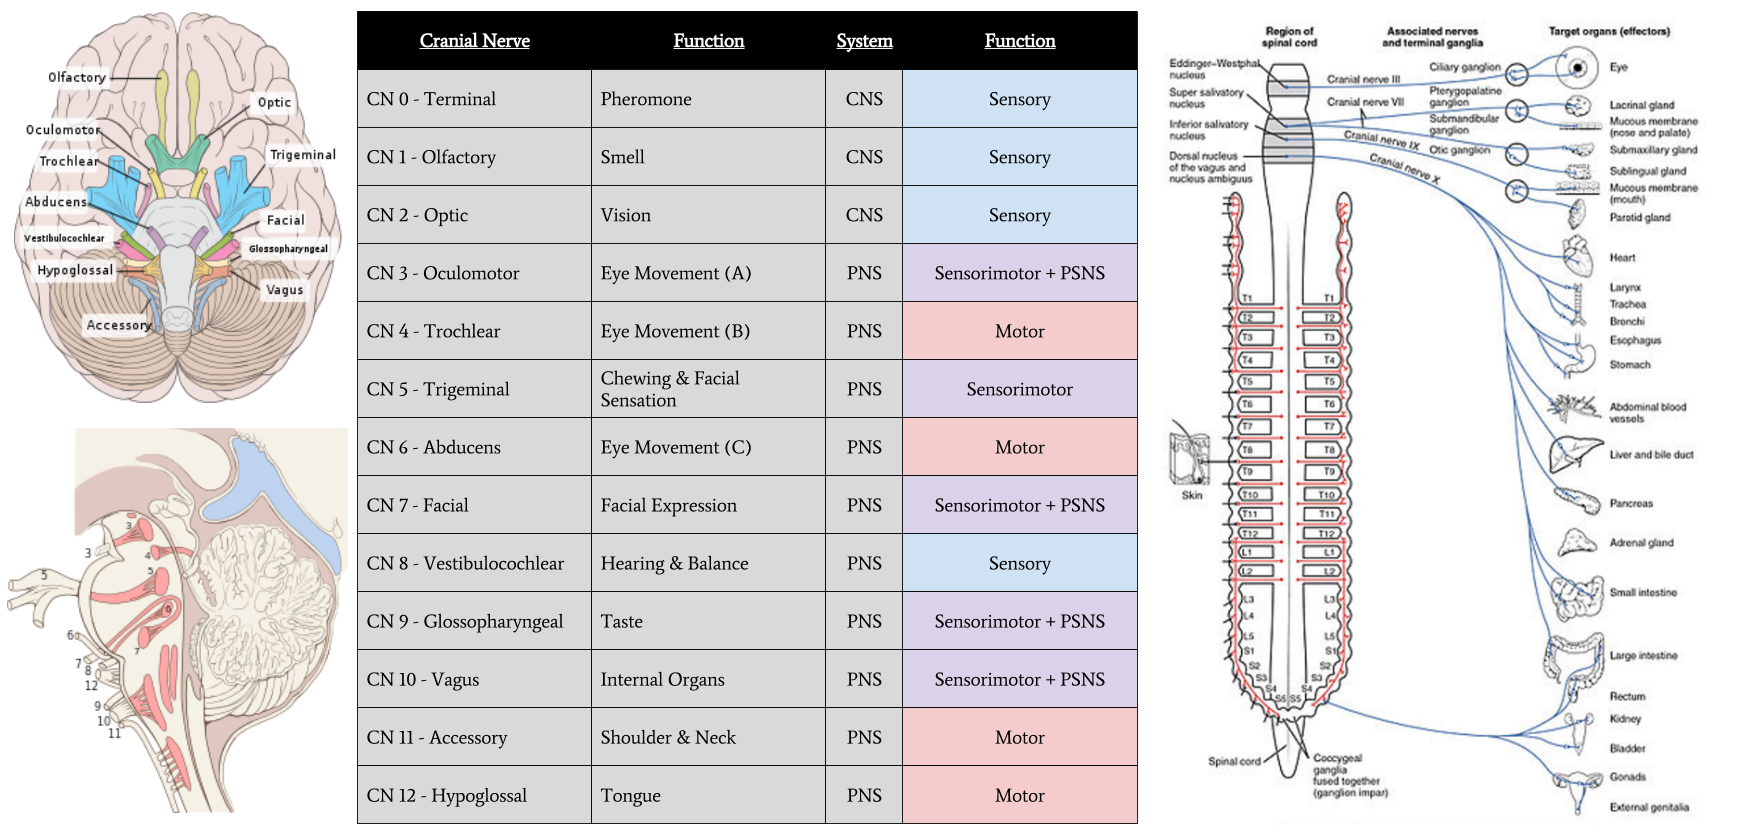 graphic] cranial nerves | fewer lacunae, Human Body